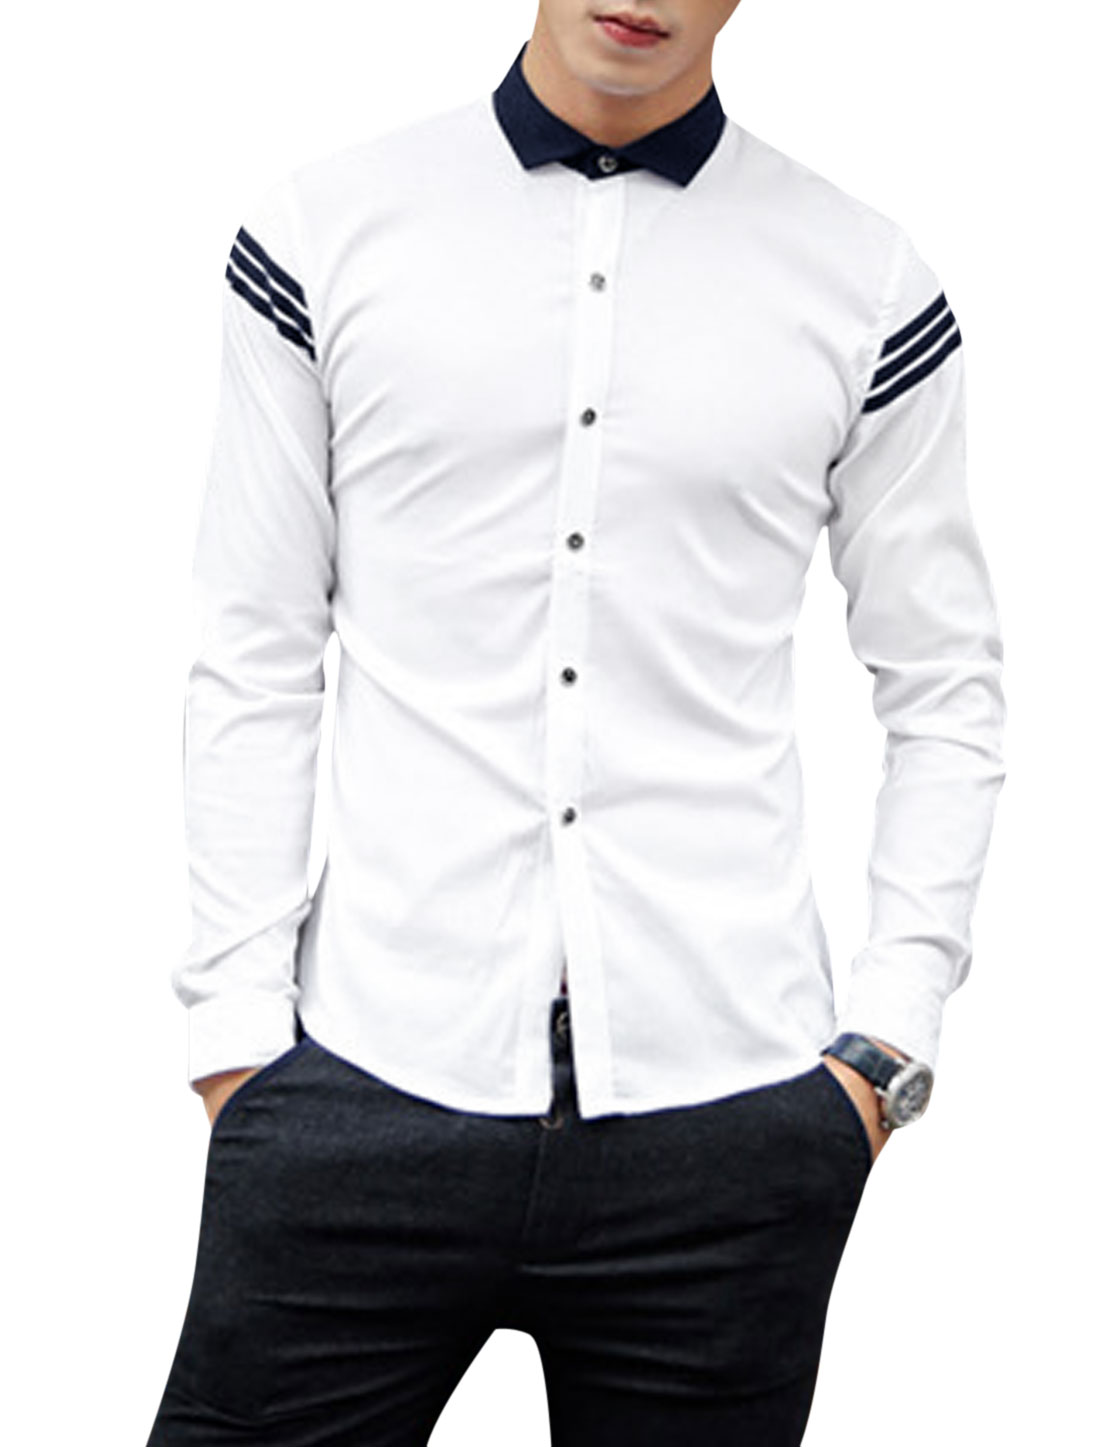 Men Point Collar Button Closure Front Round Hem Leisure Shirt White M